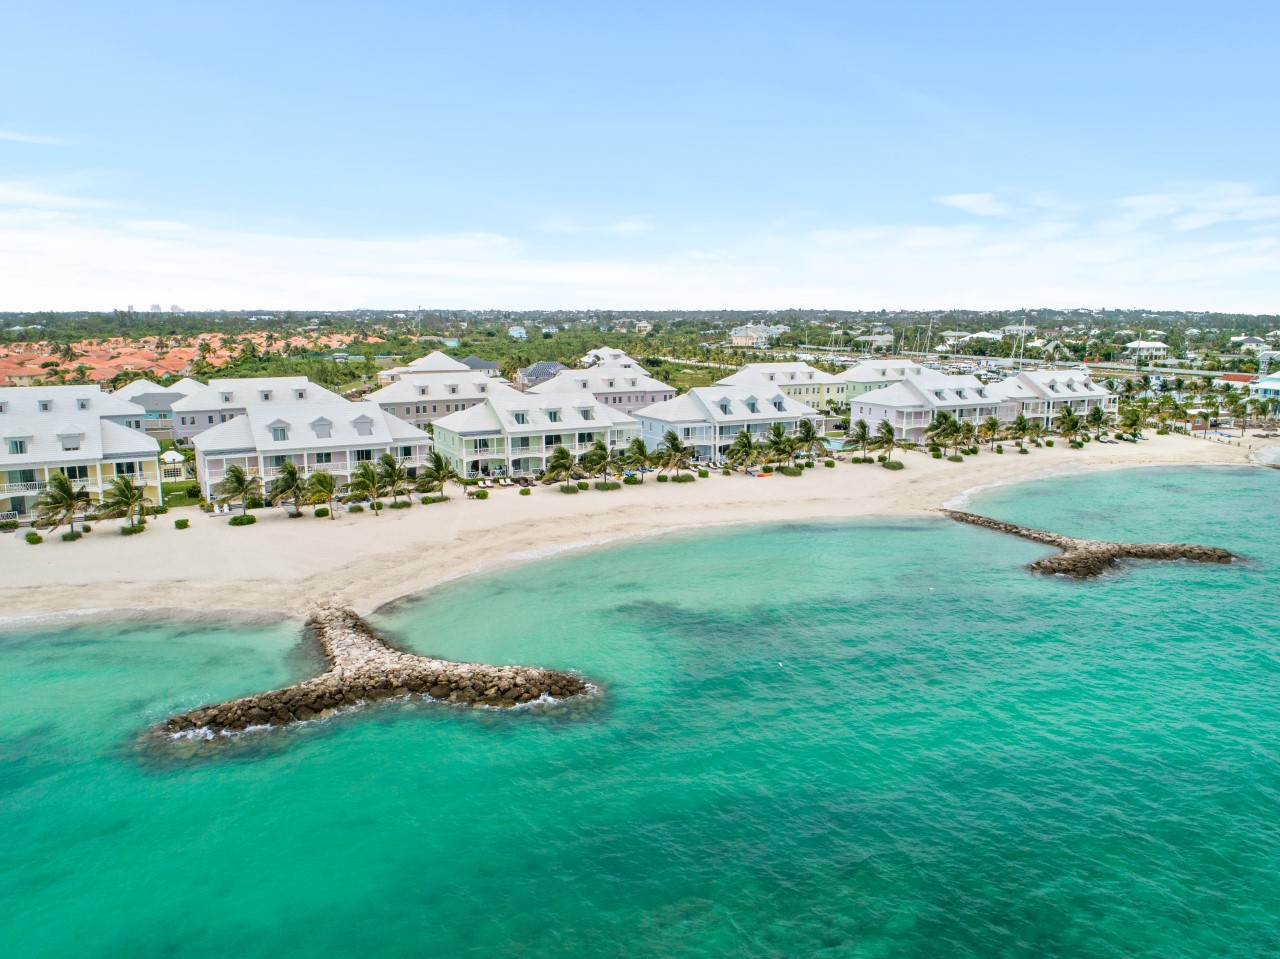 Luxury Beachfront Property for sale Nassau, Bahamas